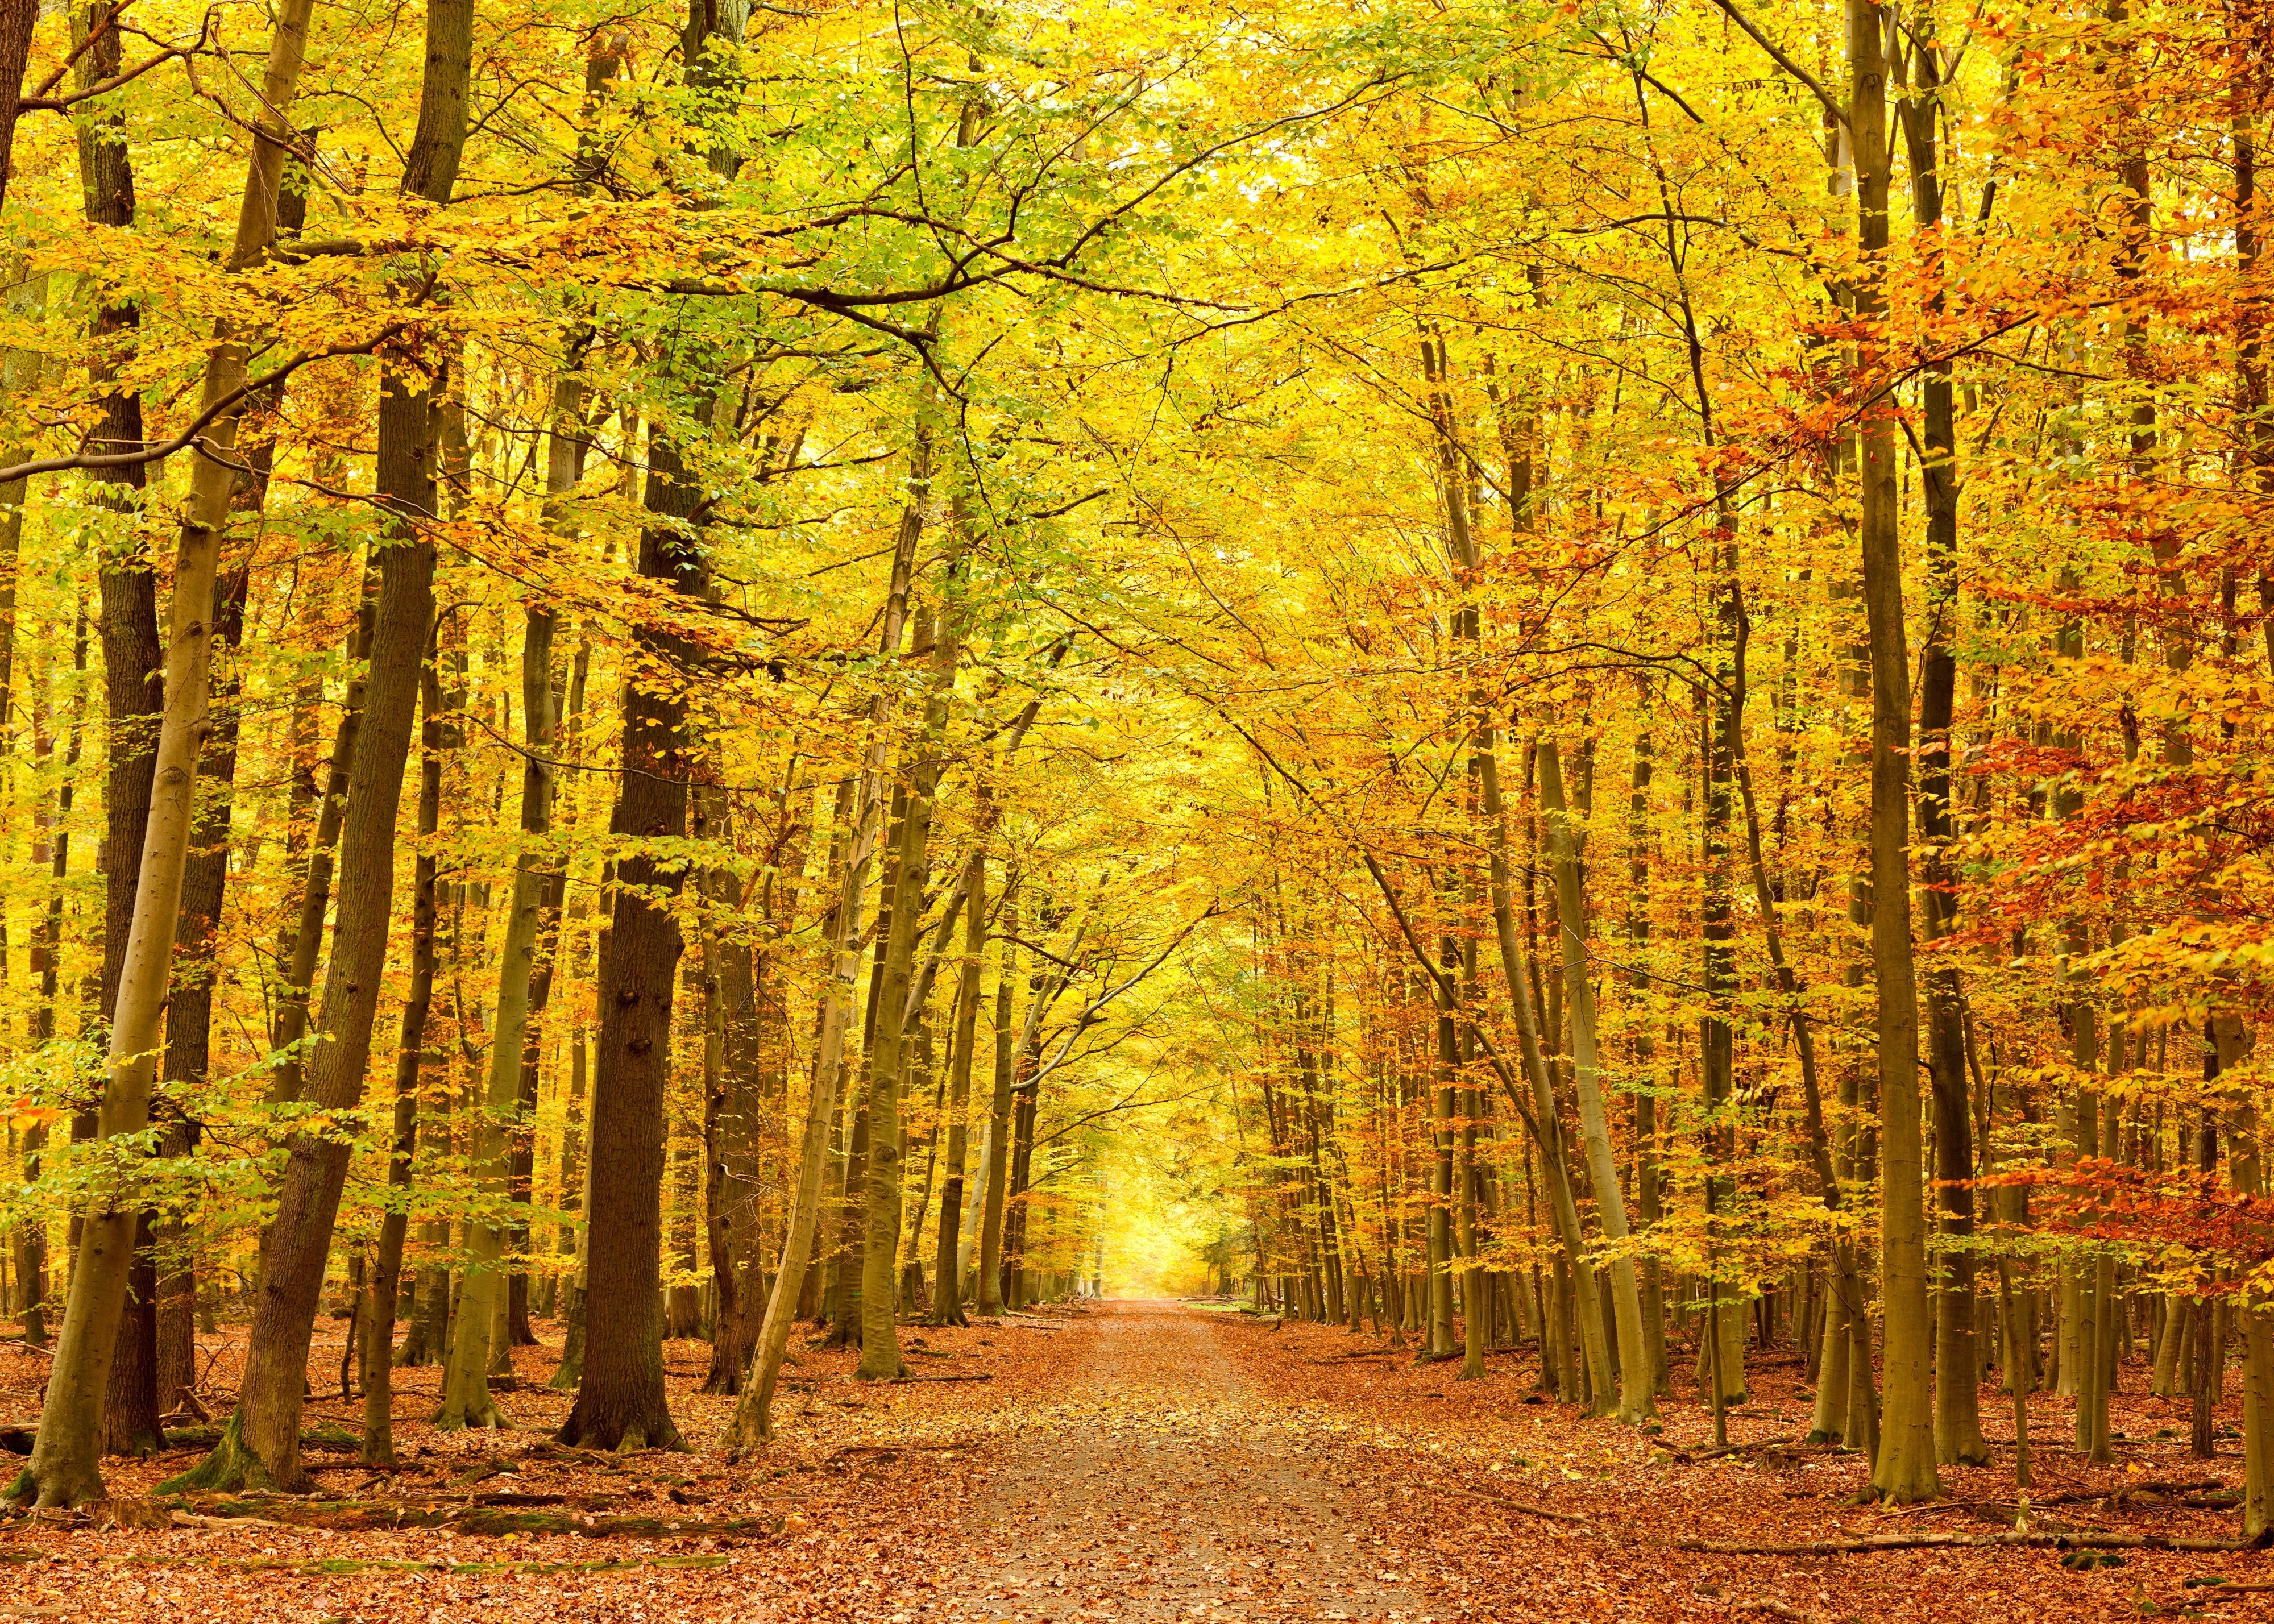 High Definition Photo Of Forest Picture Of Trees Autumn